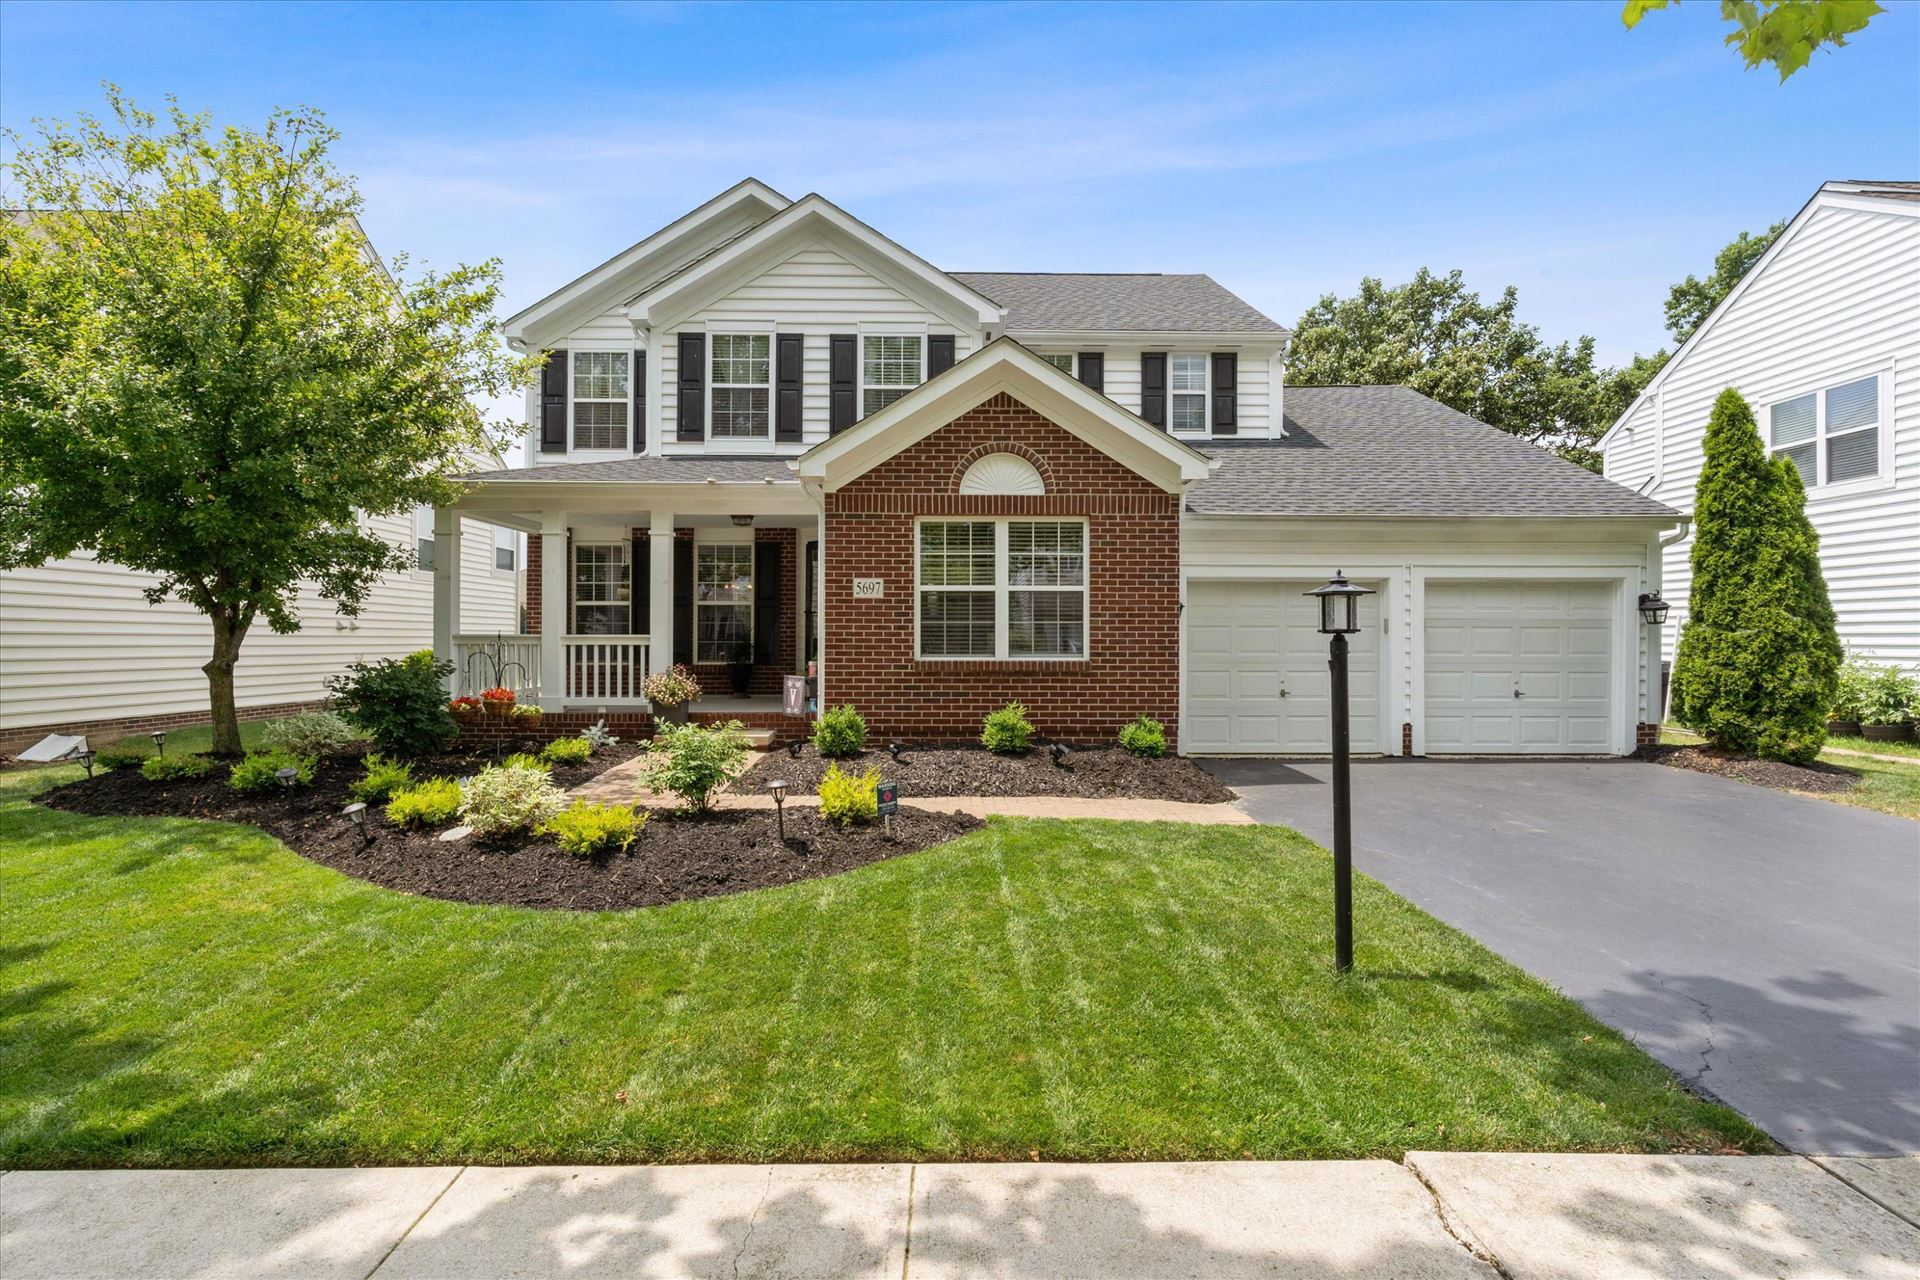 Photo for 5697 Sugarwood Drive, New Albany, OH 43054 (MLS # 221025343)